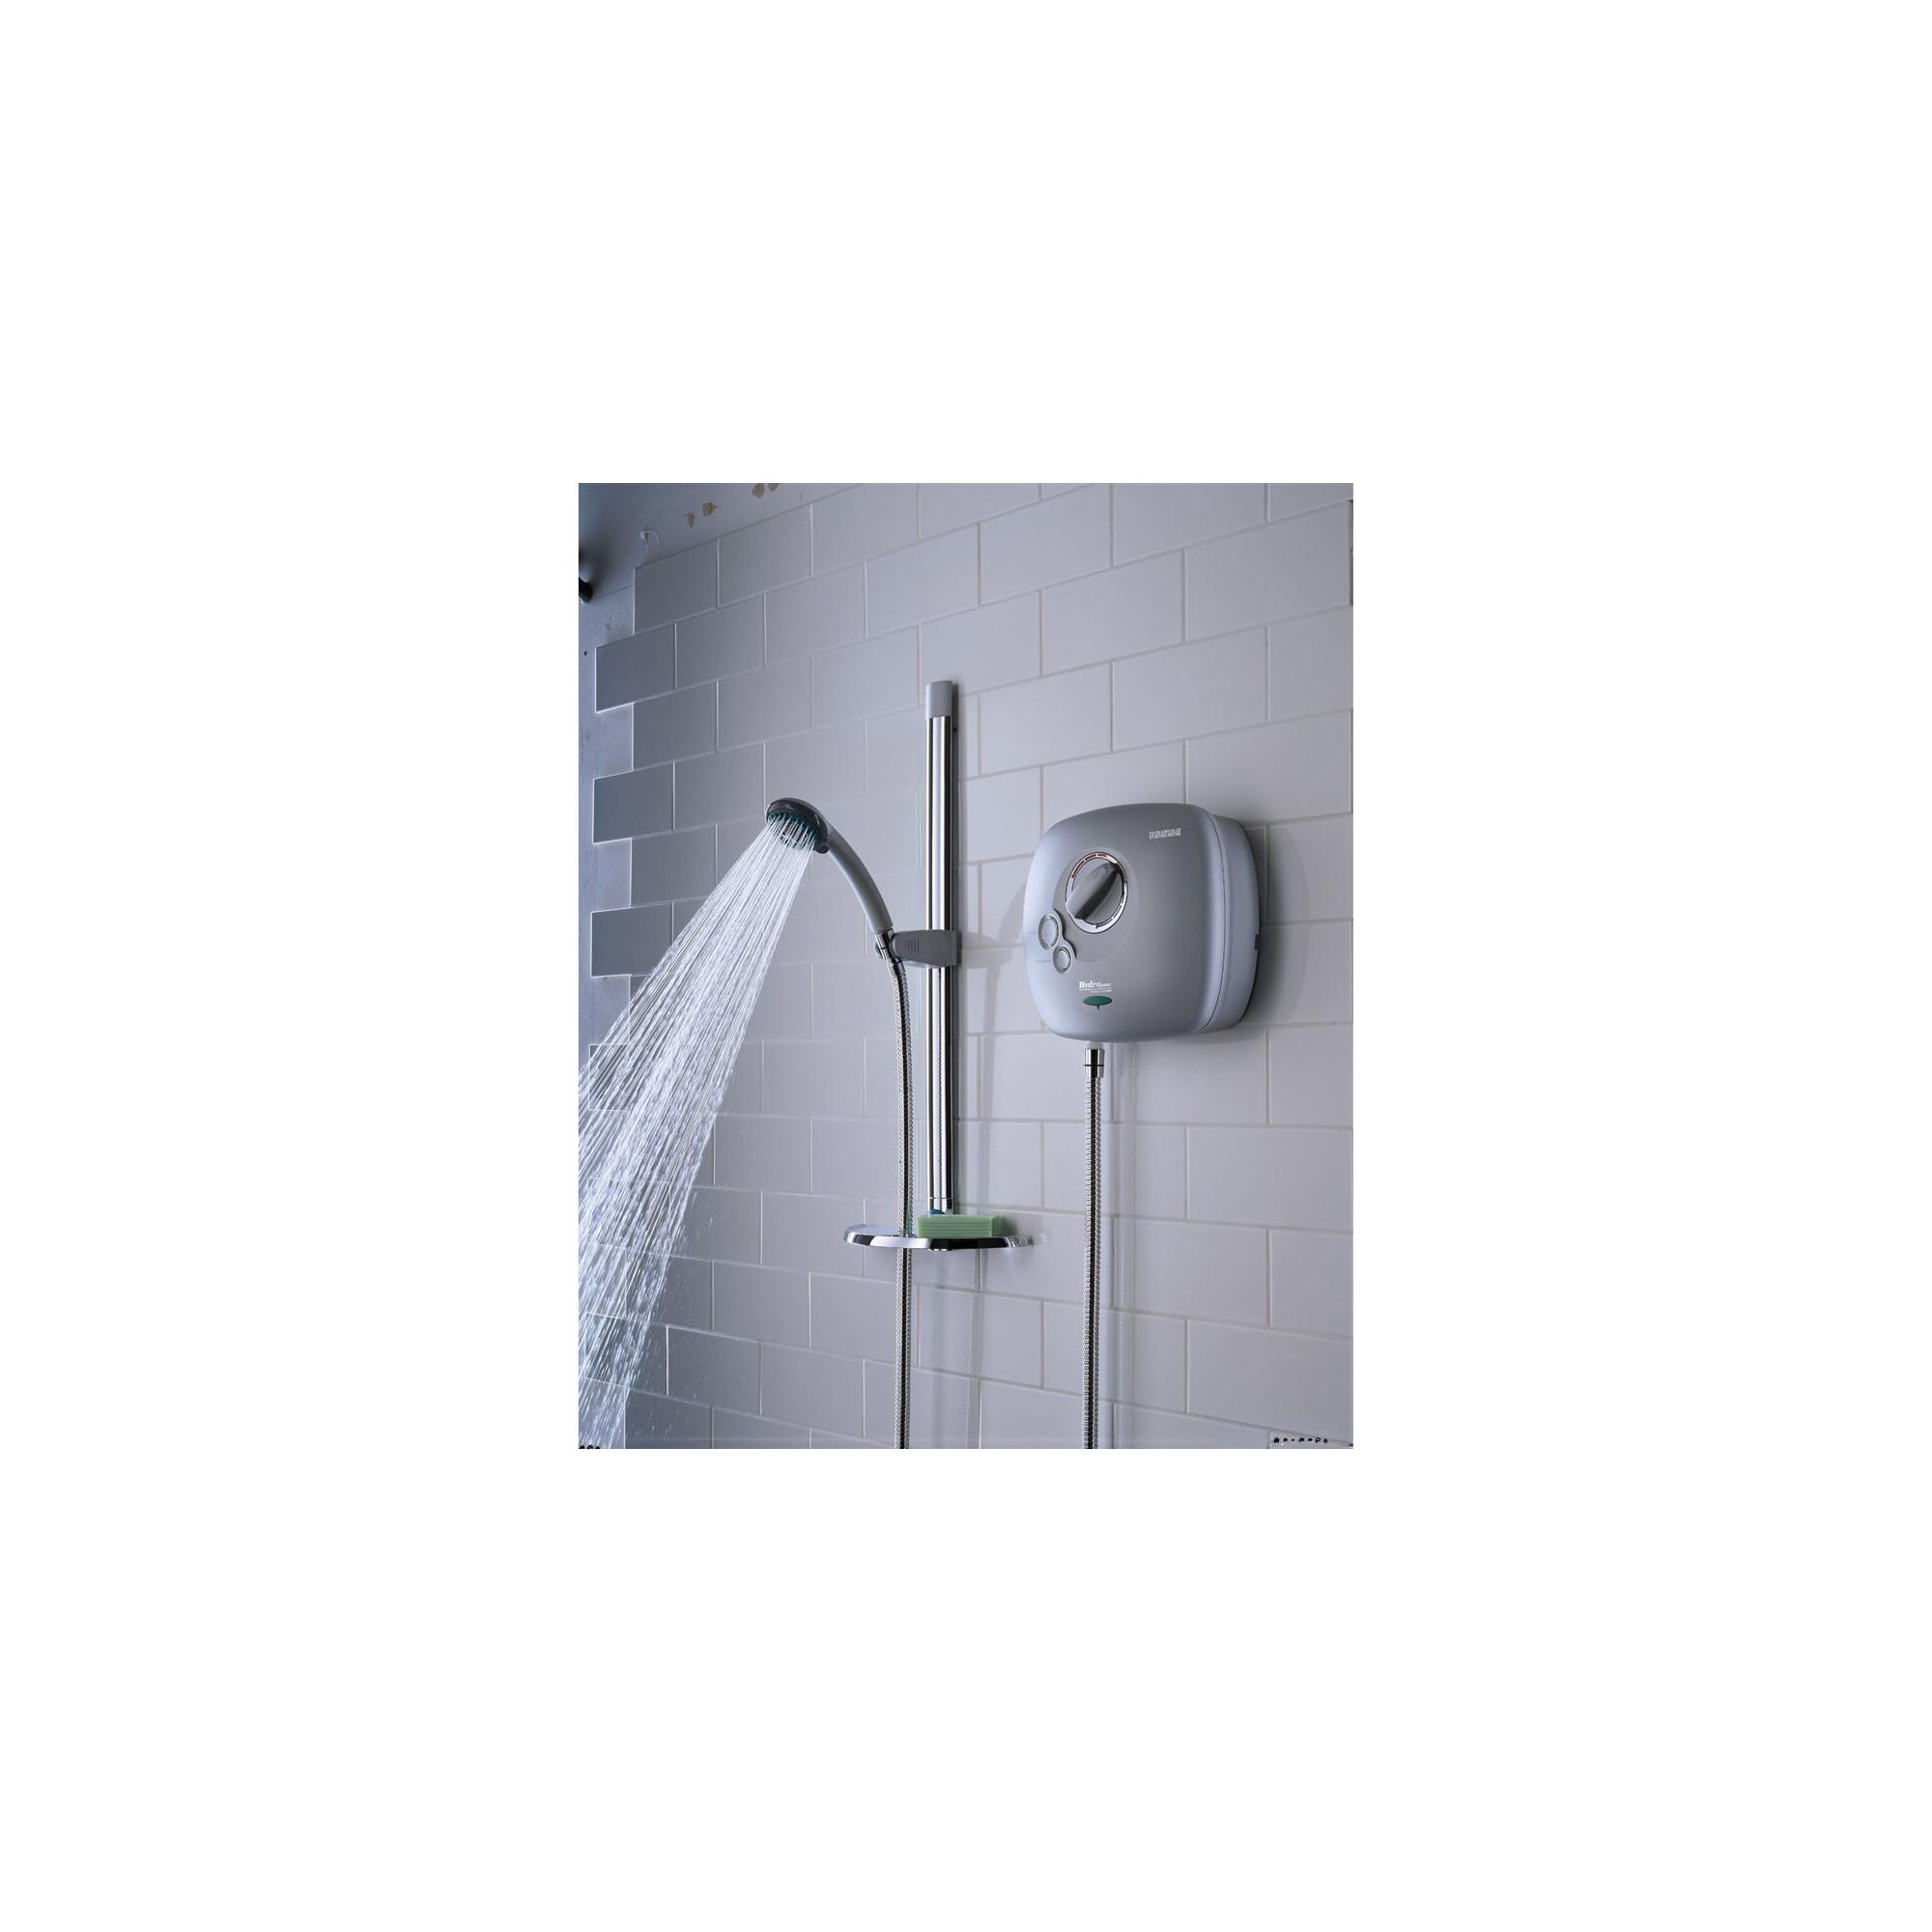 Bristan Hydropower Thermostatic Power Shower Matt Chrome at Tesco Direct